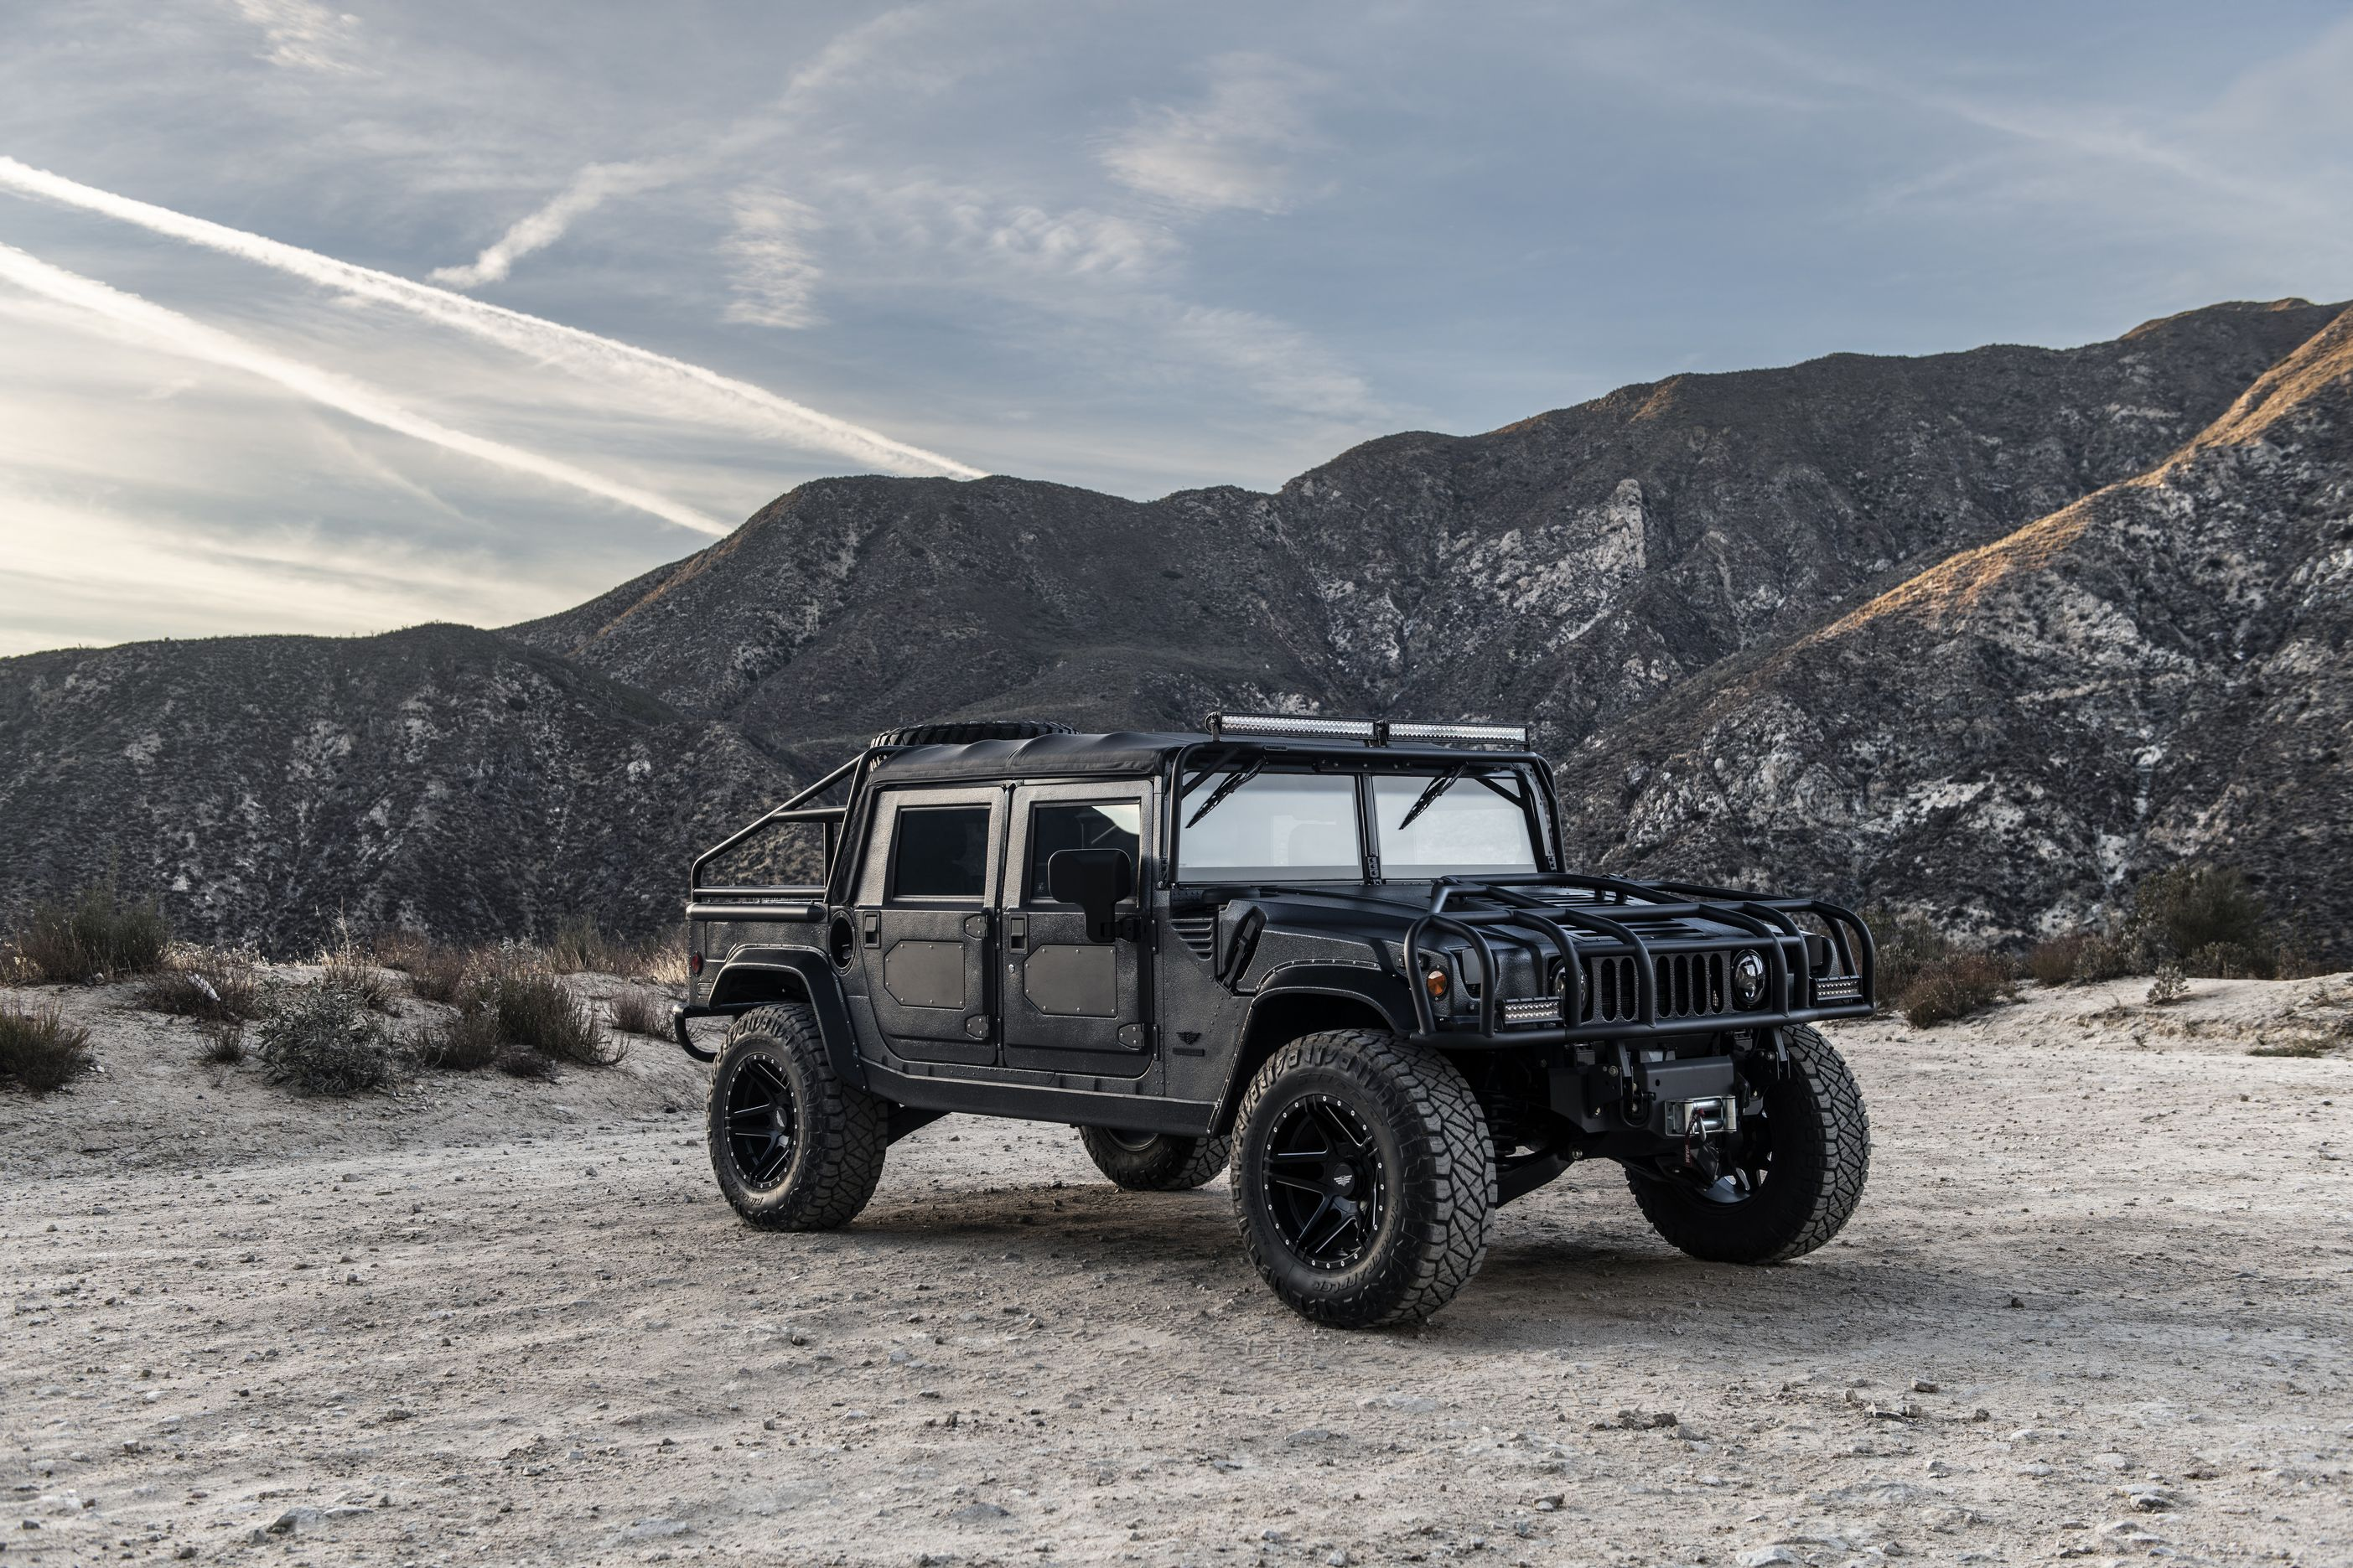 12 Cool Things About the Mil-Spec Hummer H1